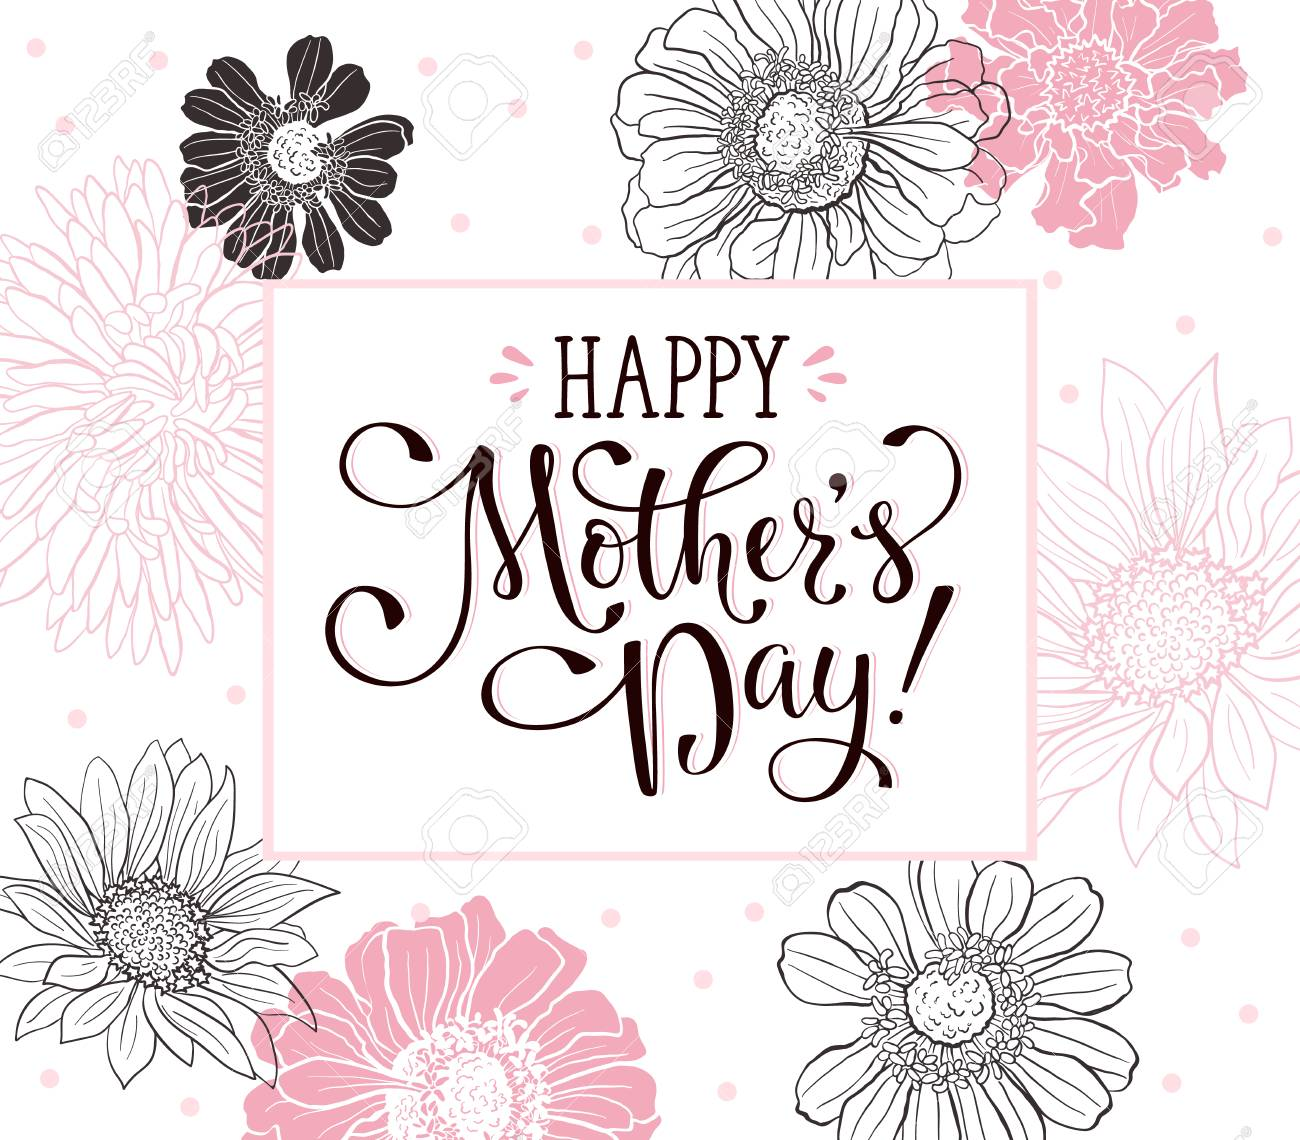 Mother day greeting card happy mothers day wording with flowers mother day greeting card happy mothers day wording with flowers outlines on white background kristyandbryce Choice Image